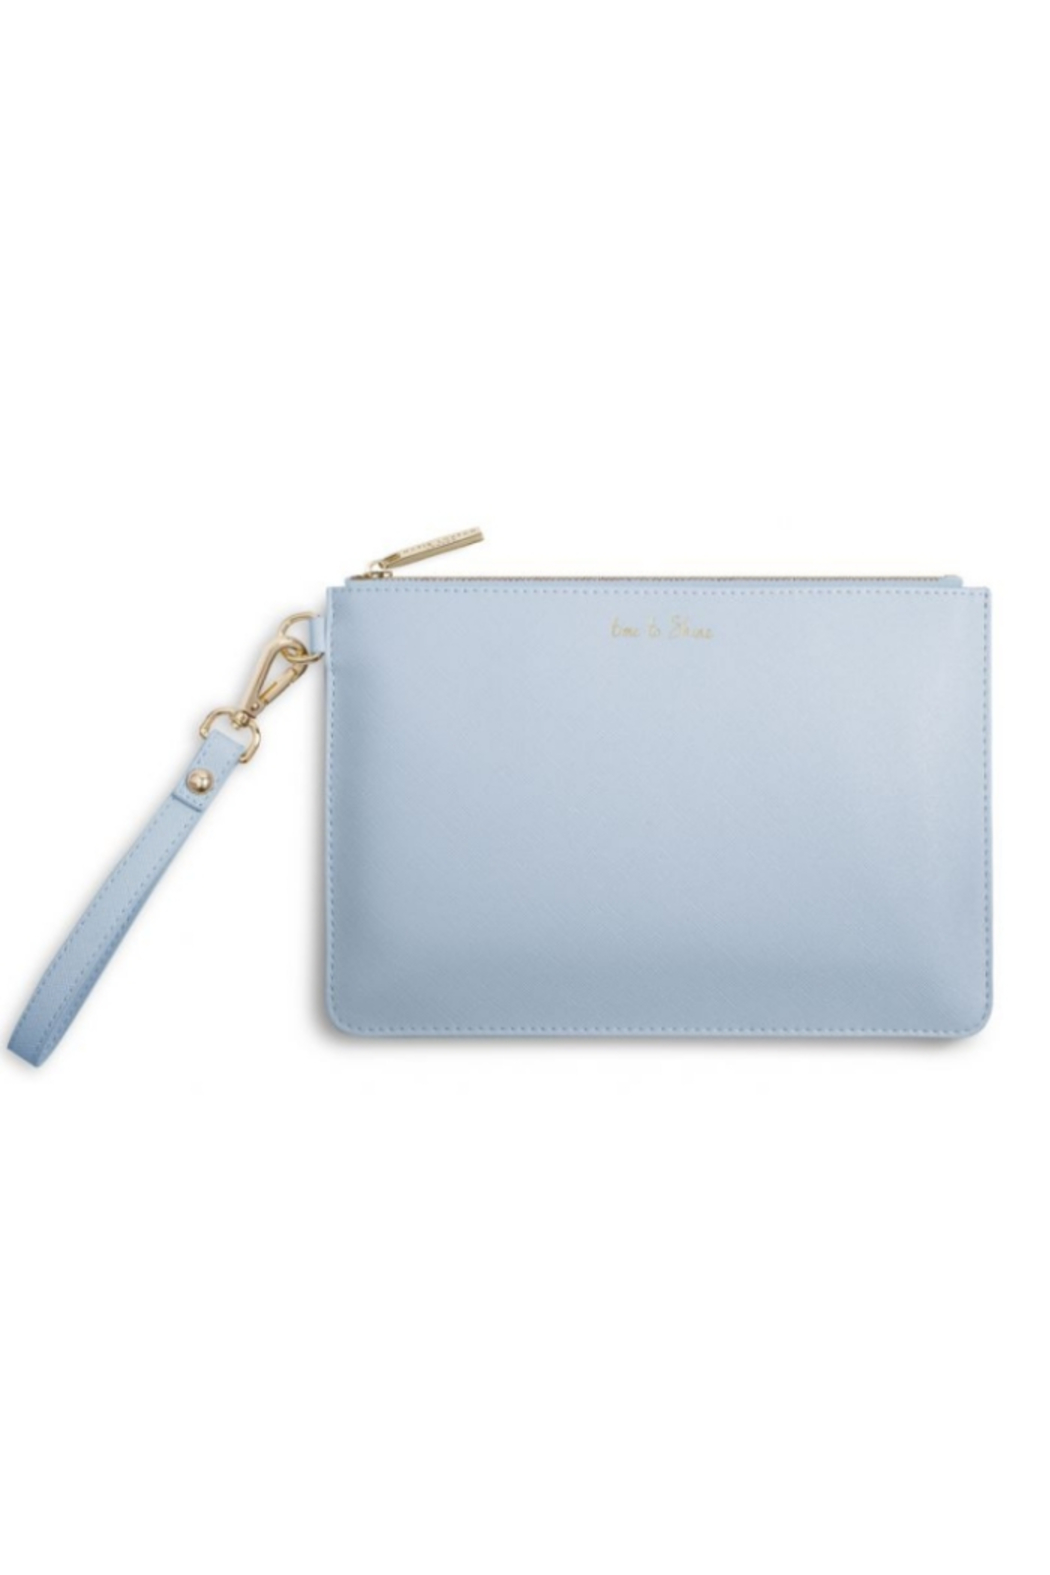 Katie Loxton SECRET MESSAGE POUCH | TIME TO SHINE, YOU GOT THIS GIRL! - Main Image